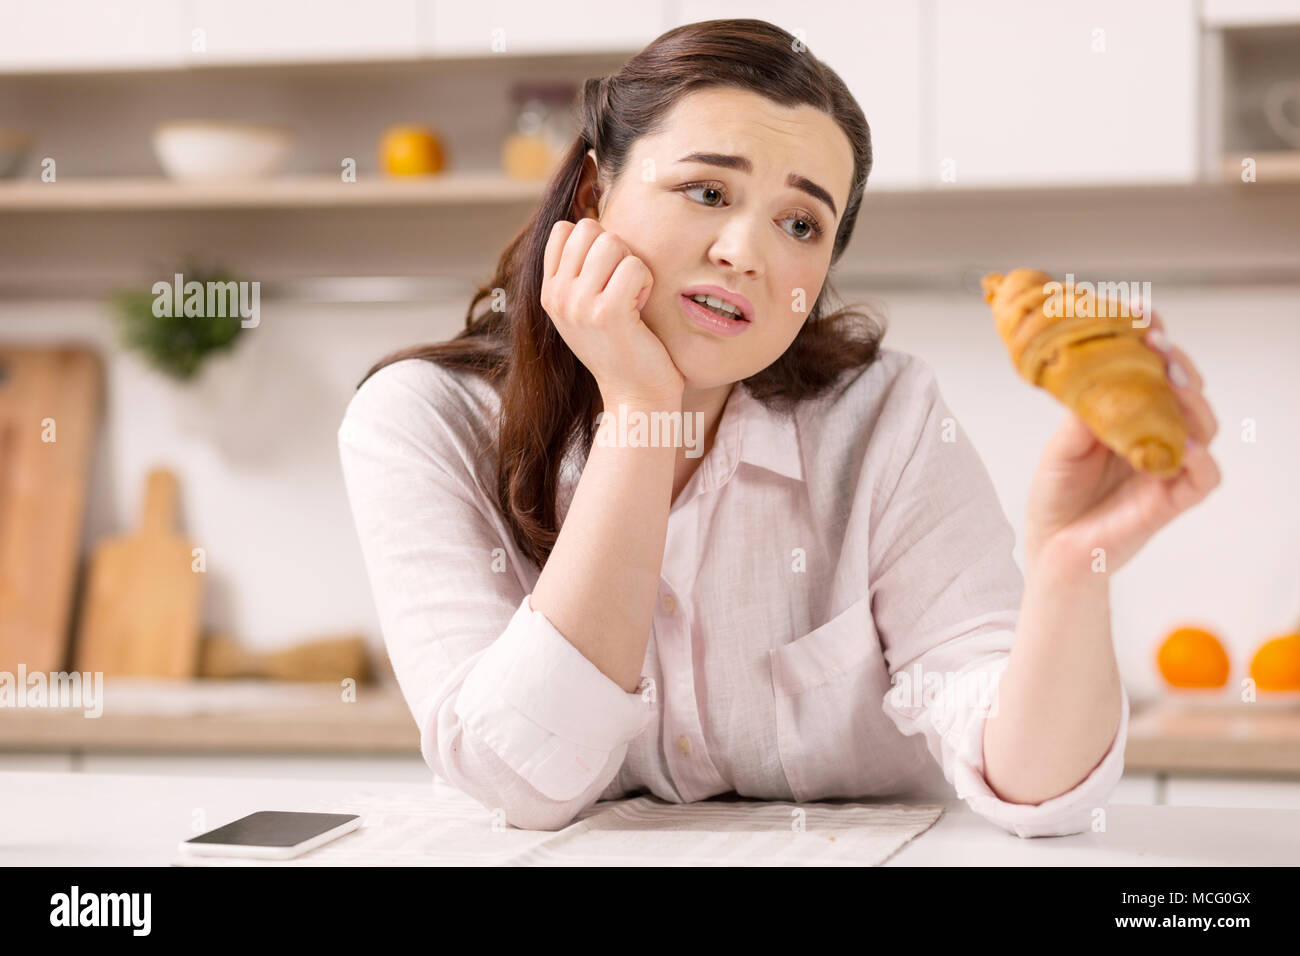 Depressed gloomy woman regretting about croissant - Stock Image